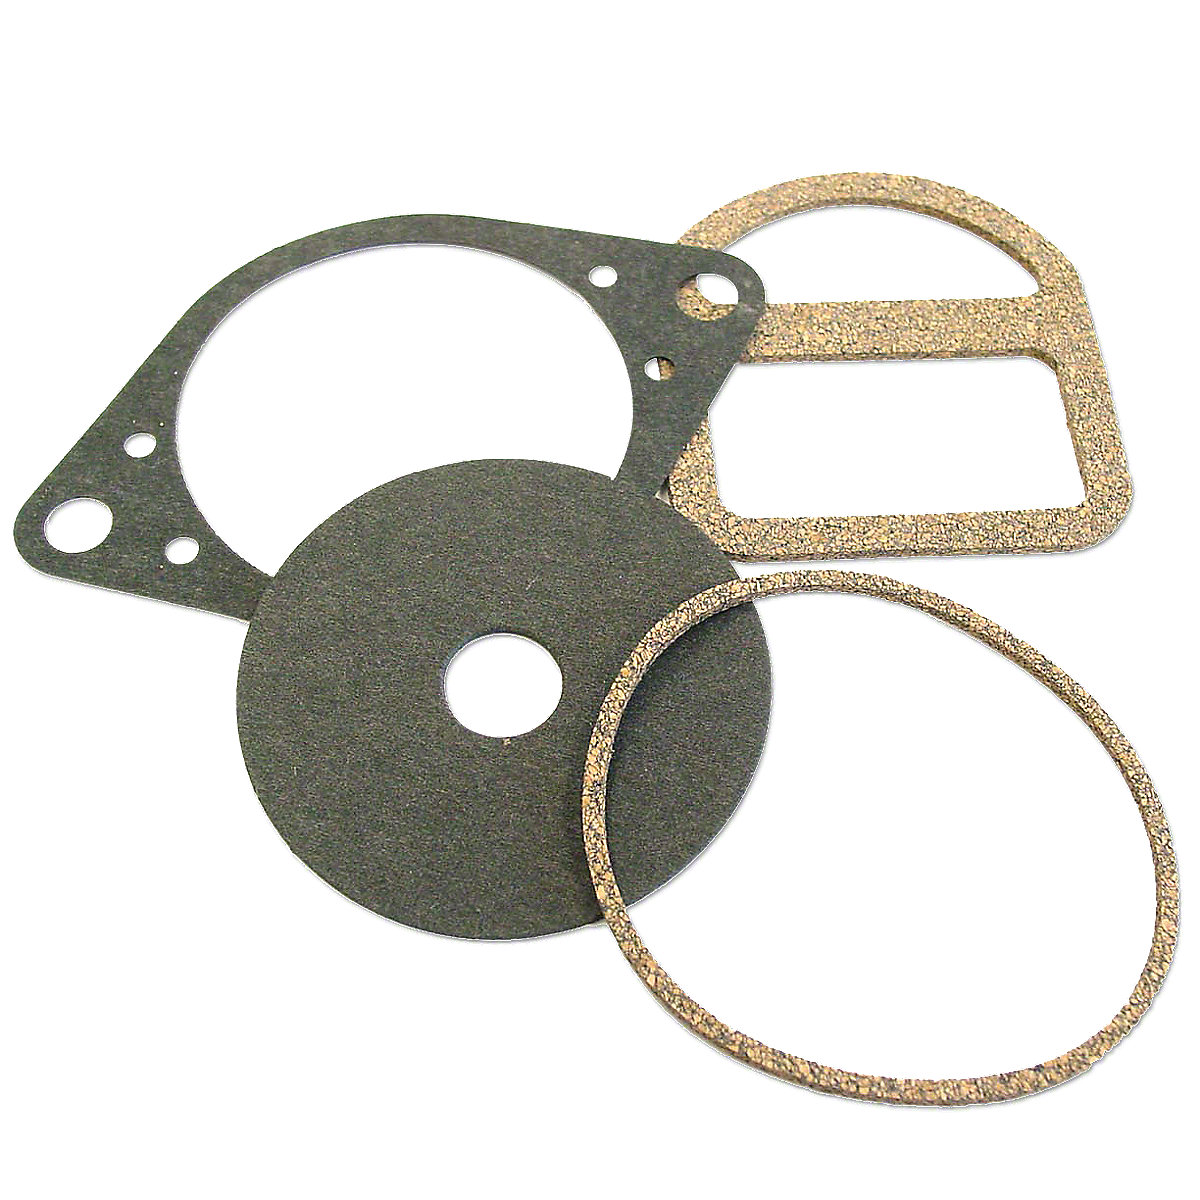 Abc060 Front Mount Distributor New Ford 9n 4 Piece Gasket Kit